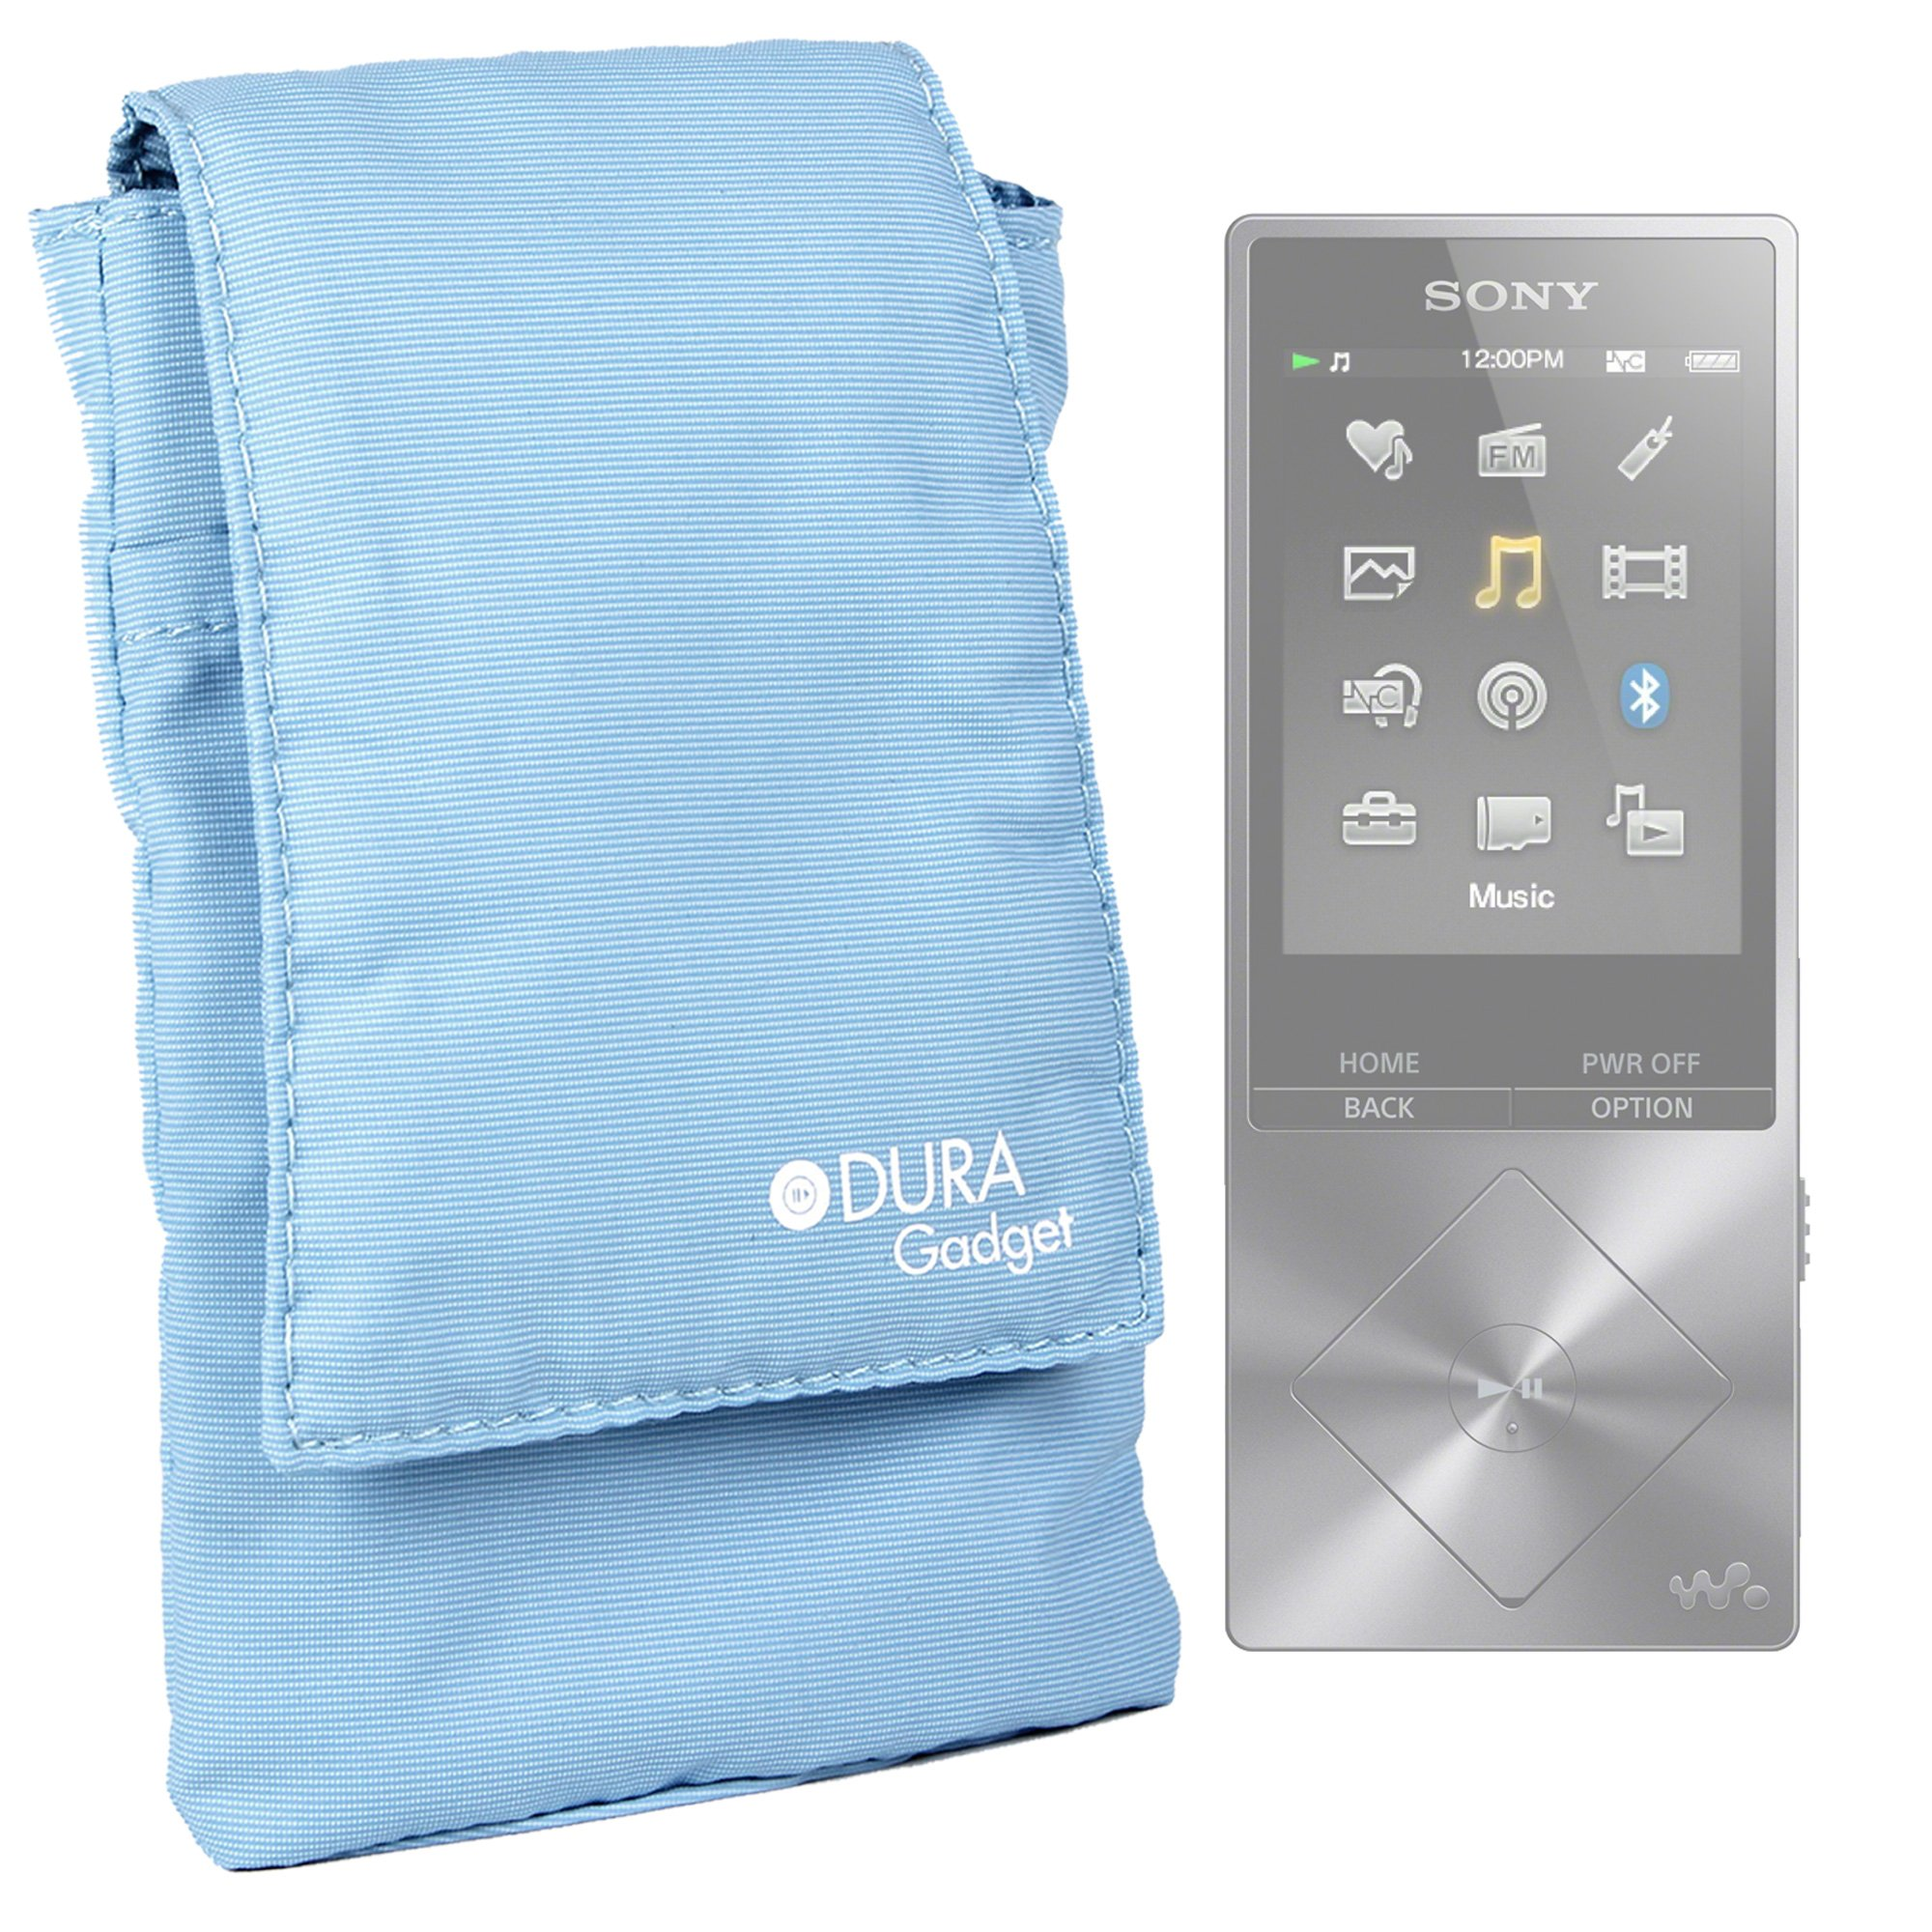 DURAGADGET Lightweight, Cushioned & Ultra-Portable Smartphone Case in Light Blue Compatible with the Sony Walkman NW-A26 MP3 Player